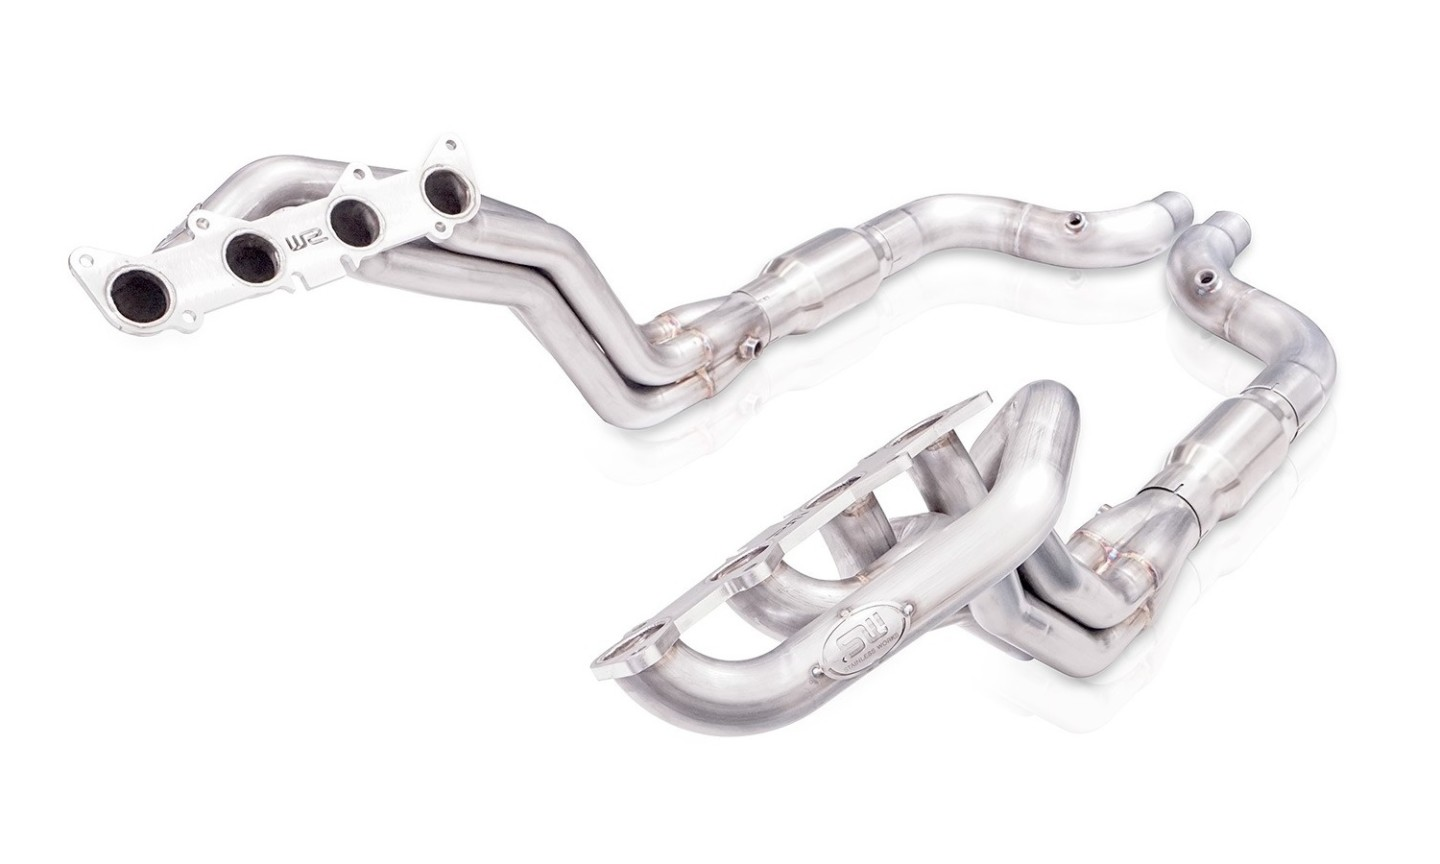 Stainless Works Introduces GT350 Headers And Exhausts